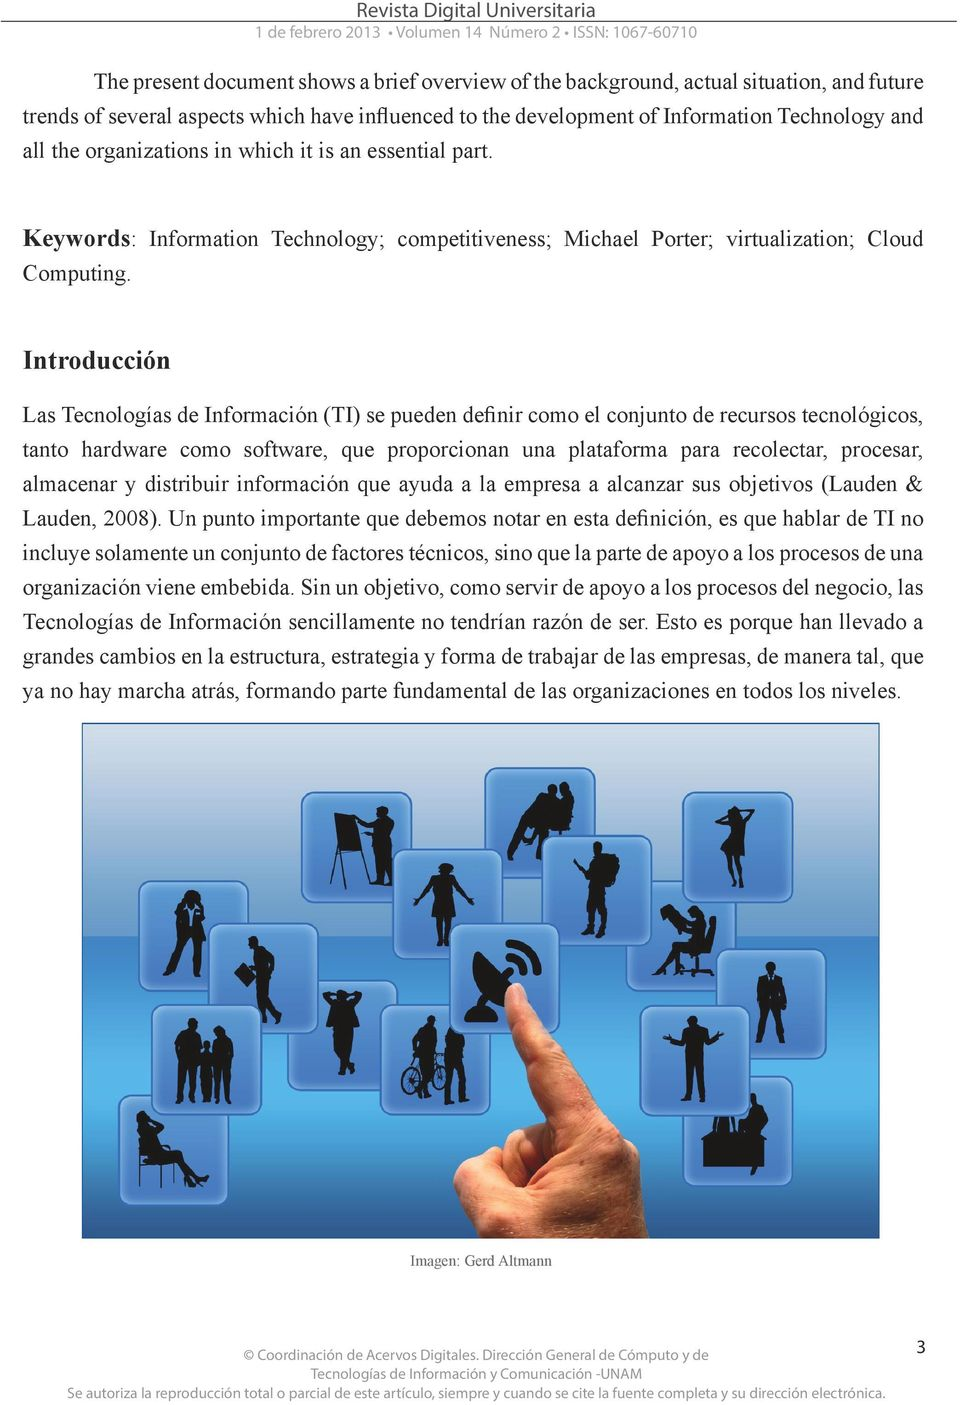 Keywords: Information Technology; competitiveness; Michael Porter; virtualization; Cloud Computing.